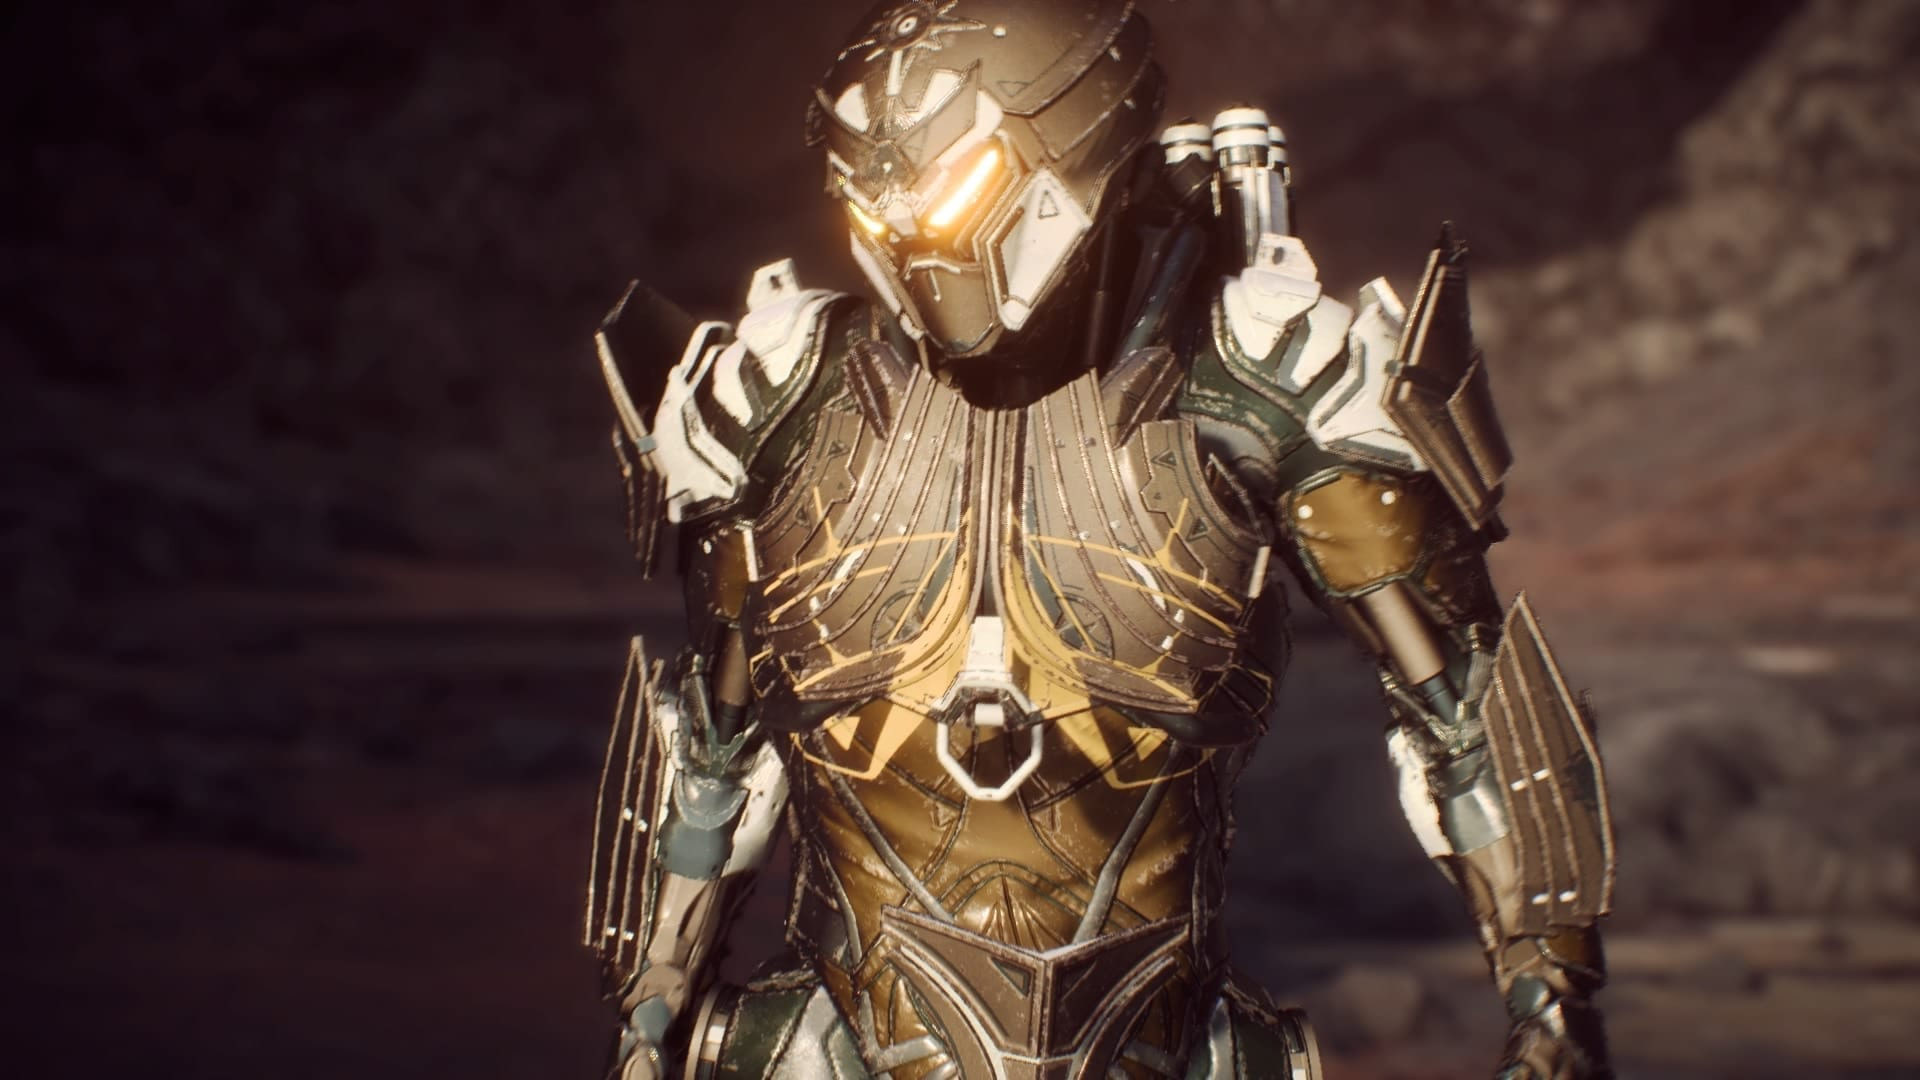 Some more armor available to purchase in Anthem